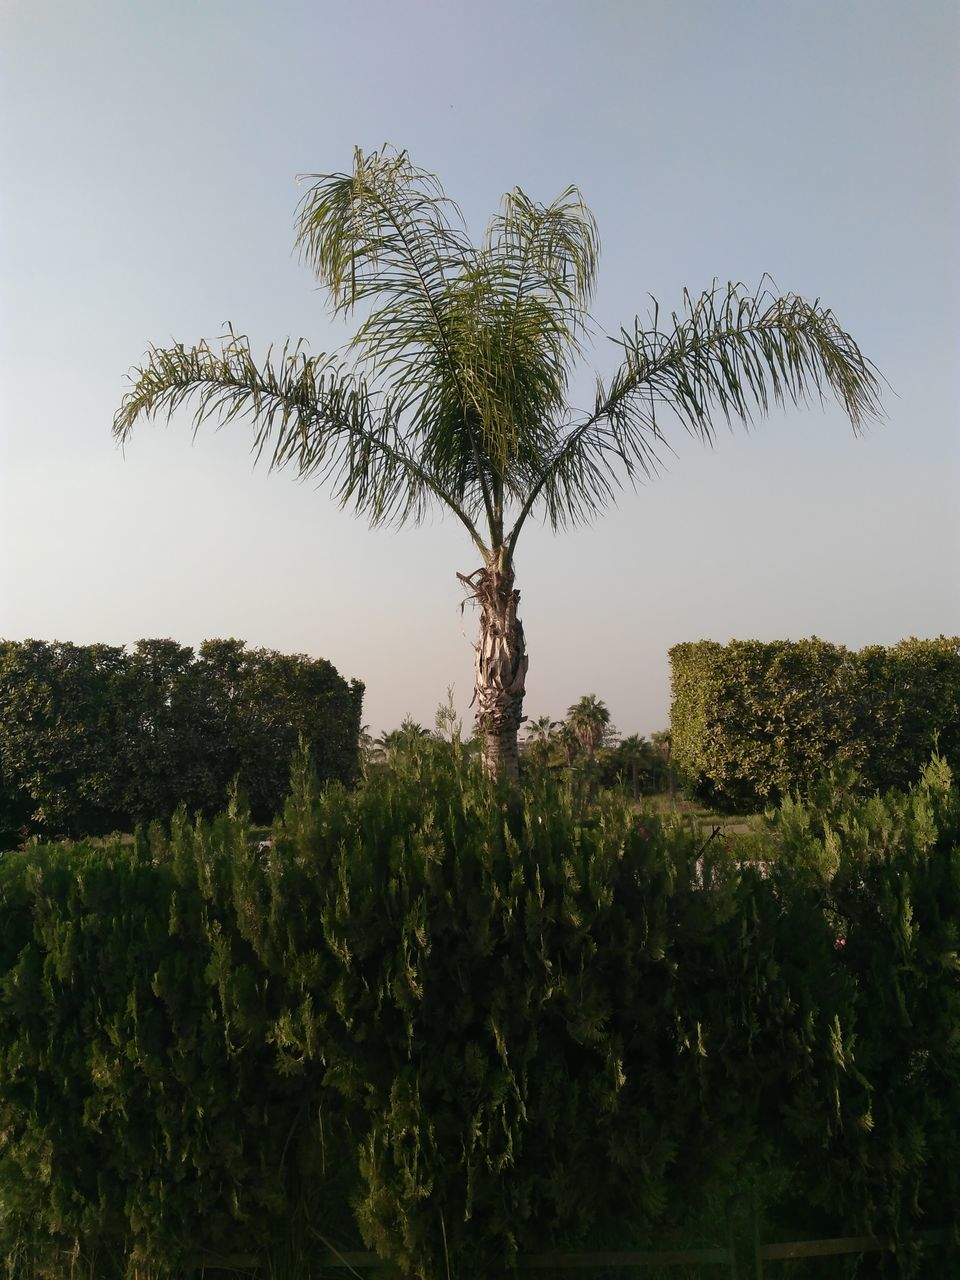 tree, growth, statue, plant, human representation, green color, day, no people, outdoors, sculpture, sky, nature, palm tree, clear sky, grass, beauty in nature